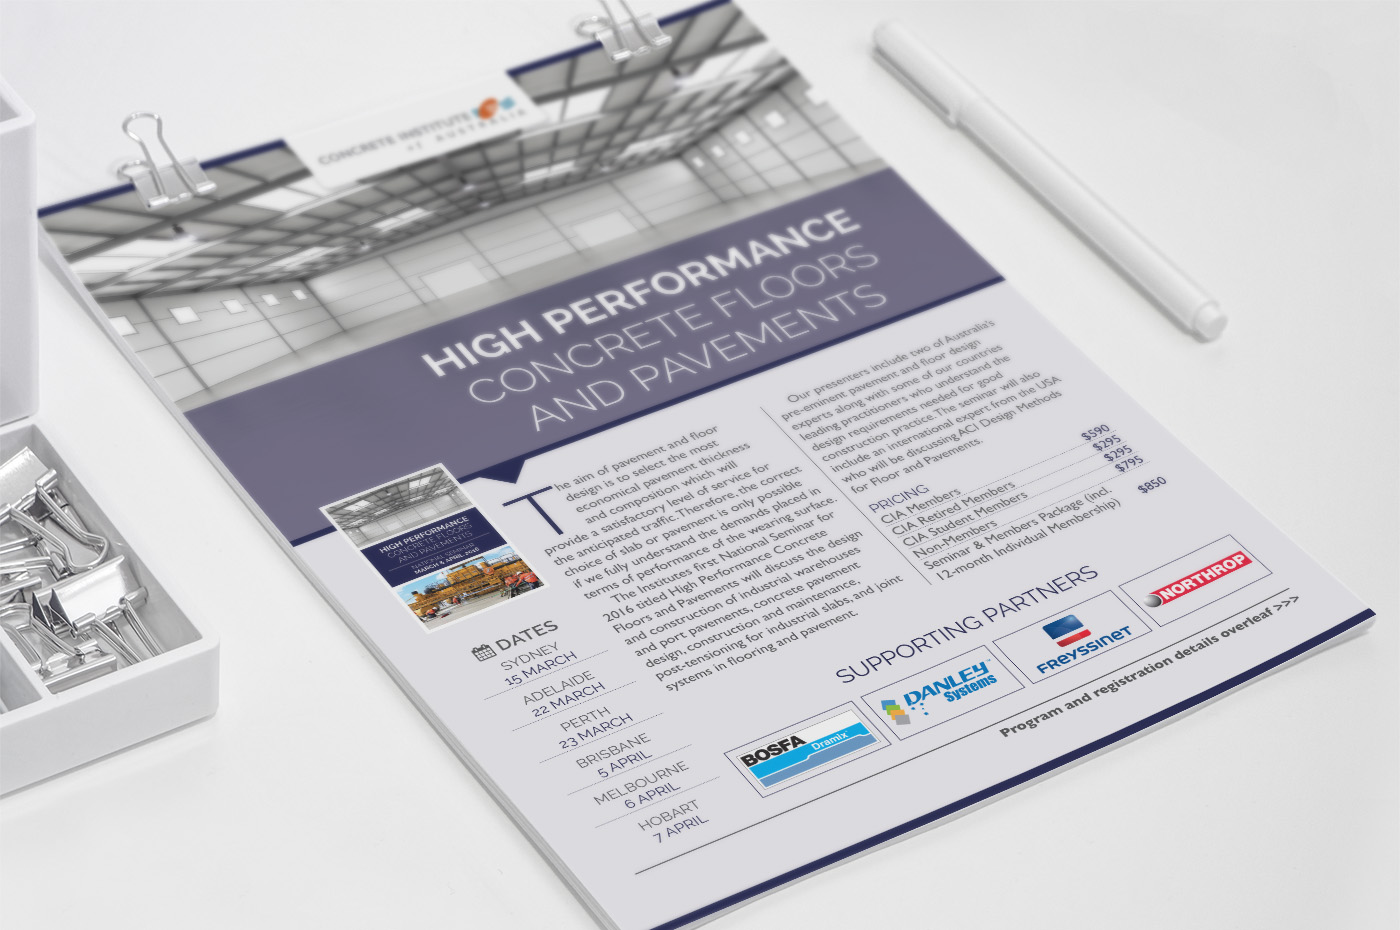 CIA_High Performance 2-sided flyer_1.jpg